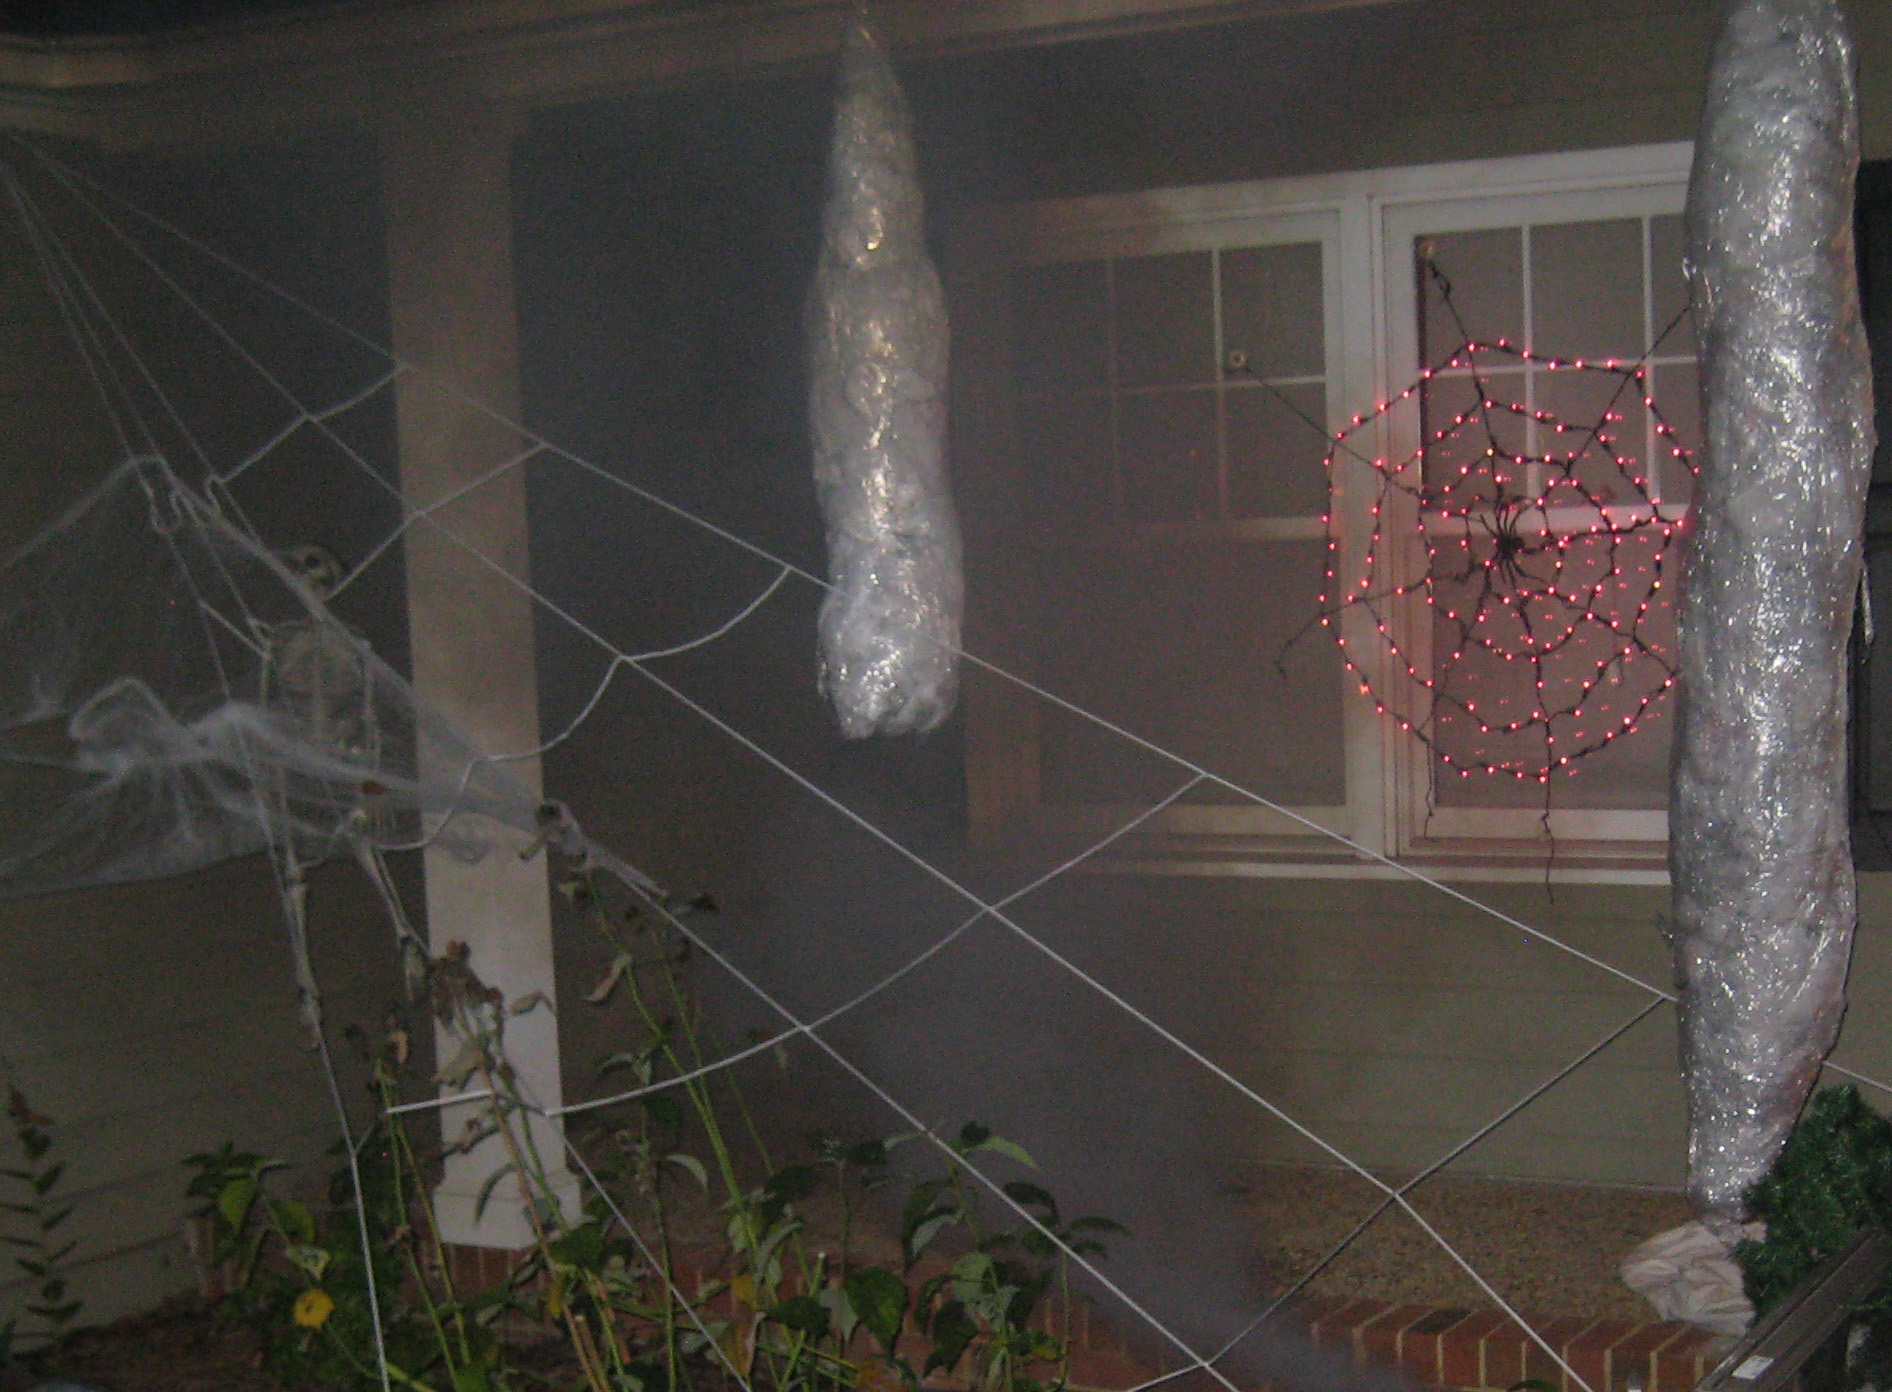 How To Make A Giant Spider Web Giant Spider Halloween Display Author Rachel Graves